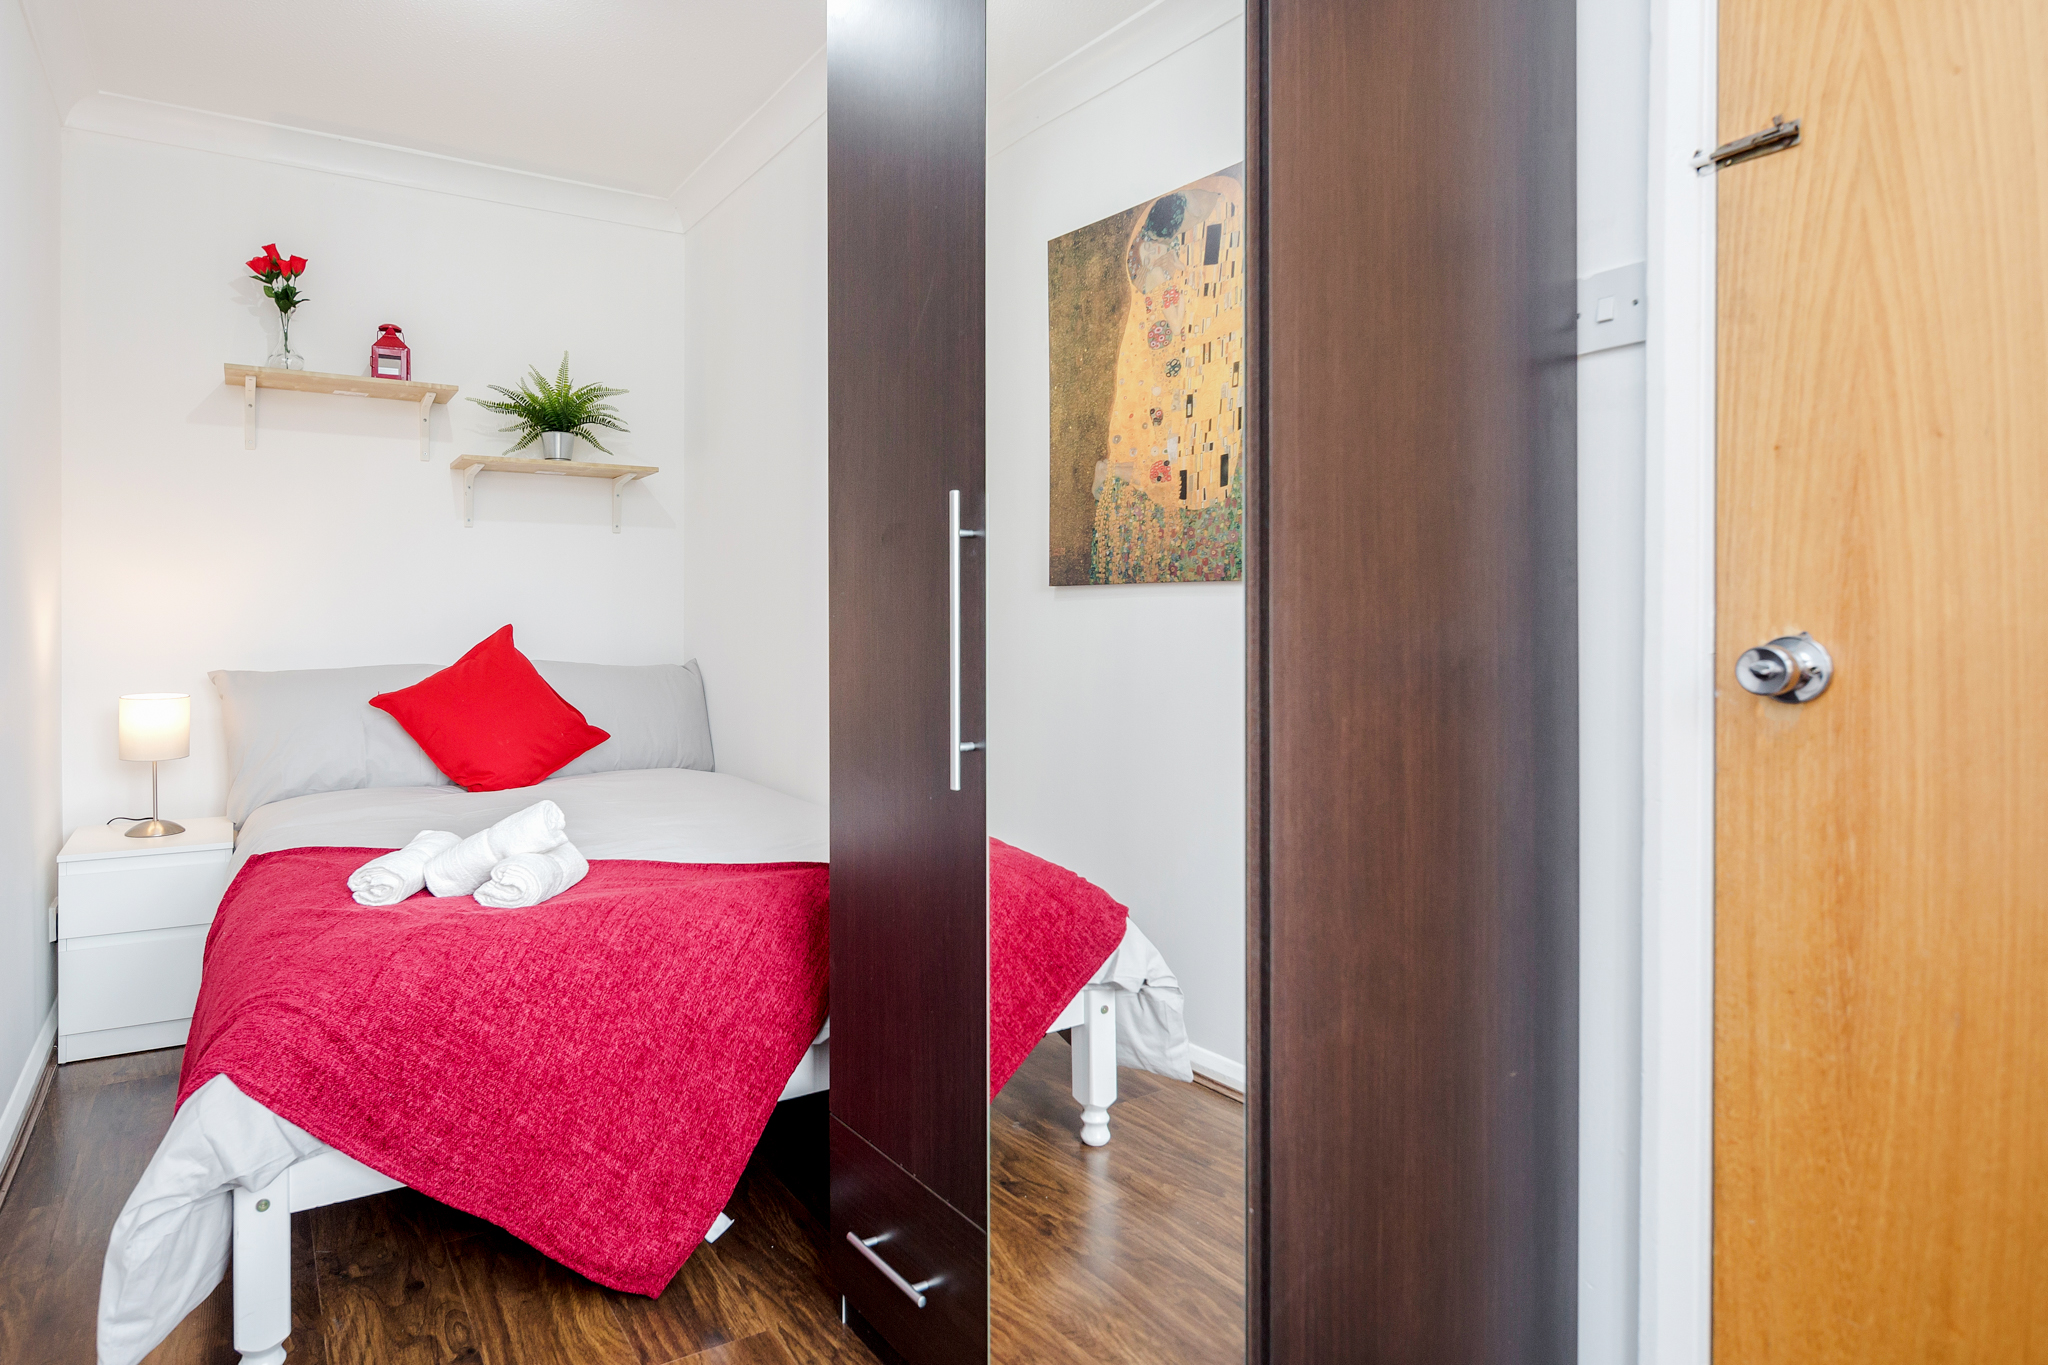 Double room 10 minutes walking from Tower Bridge - (Shared Bathroom) photo 13794086